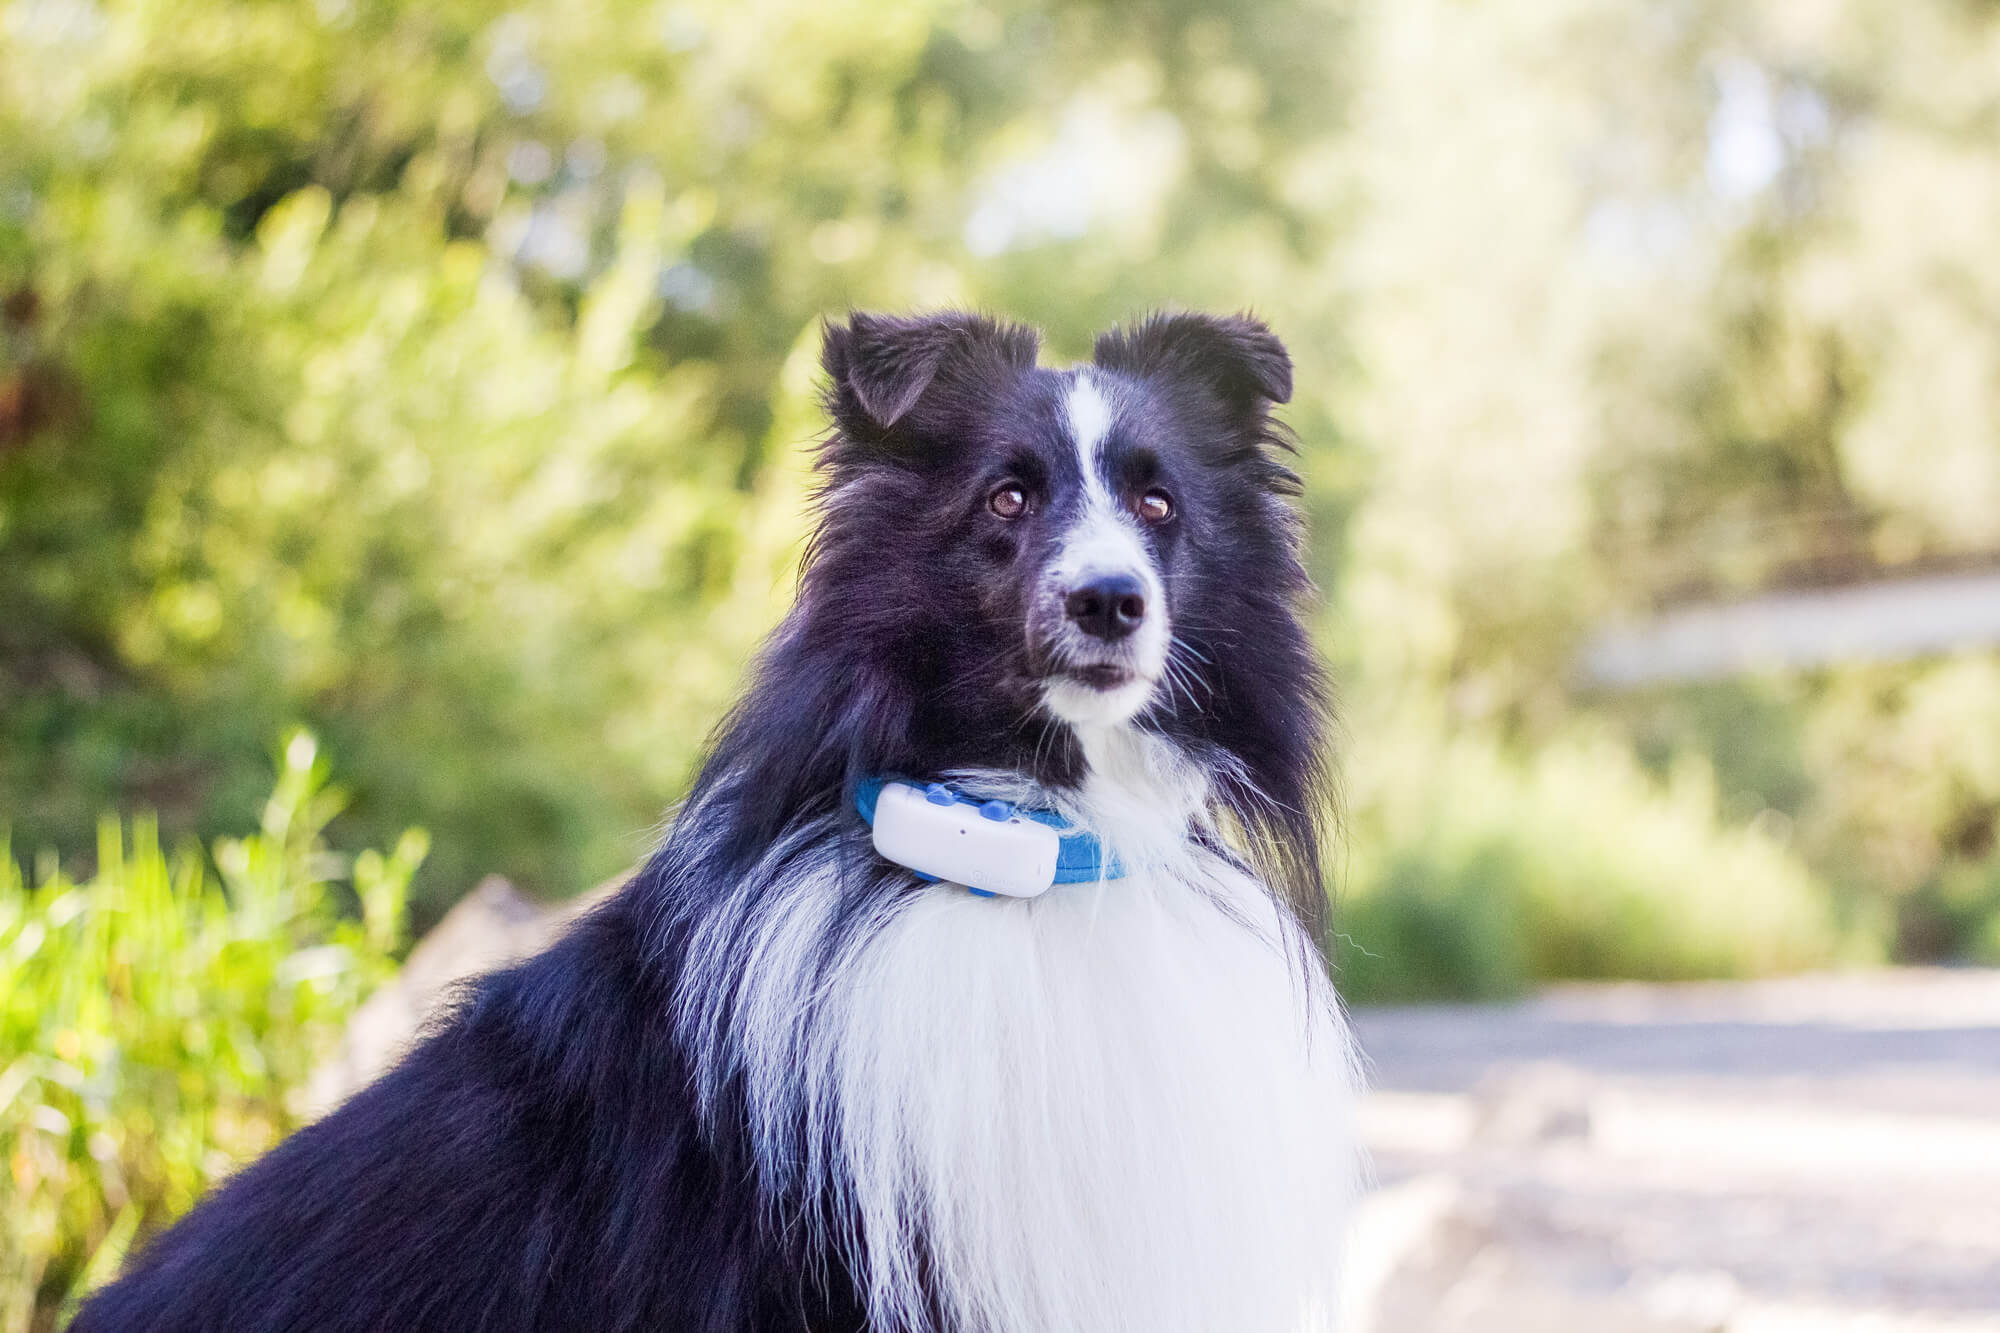 white and black dog wearing GPS tracker outdoors